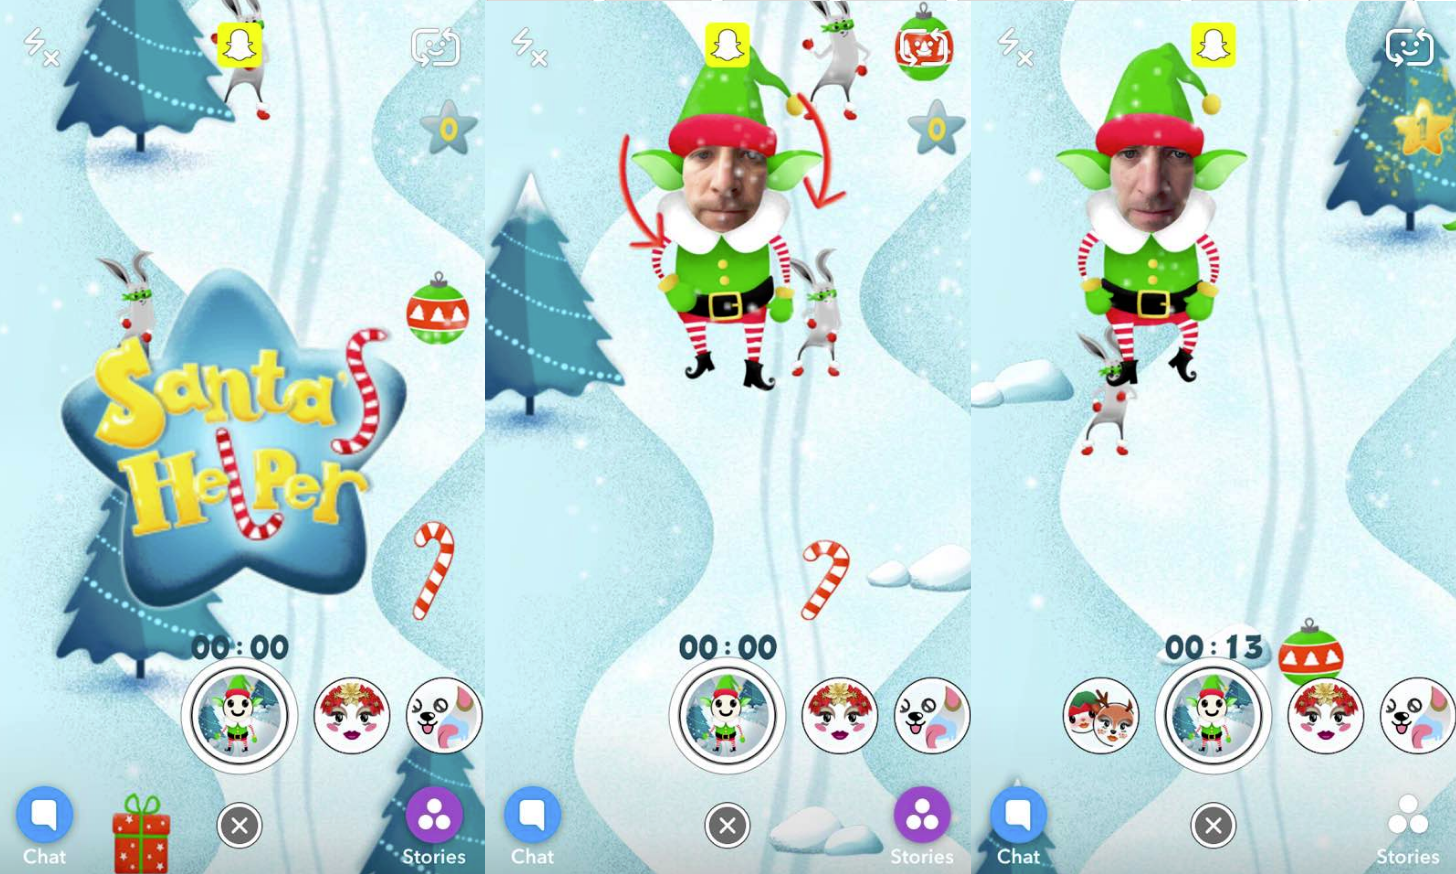 Snapchat Lens Games Could be a New Marketing Option | Social Media Today